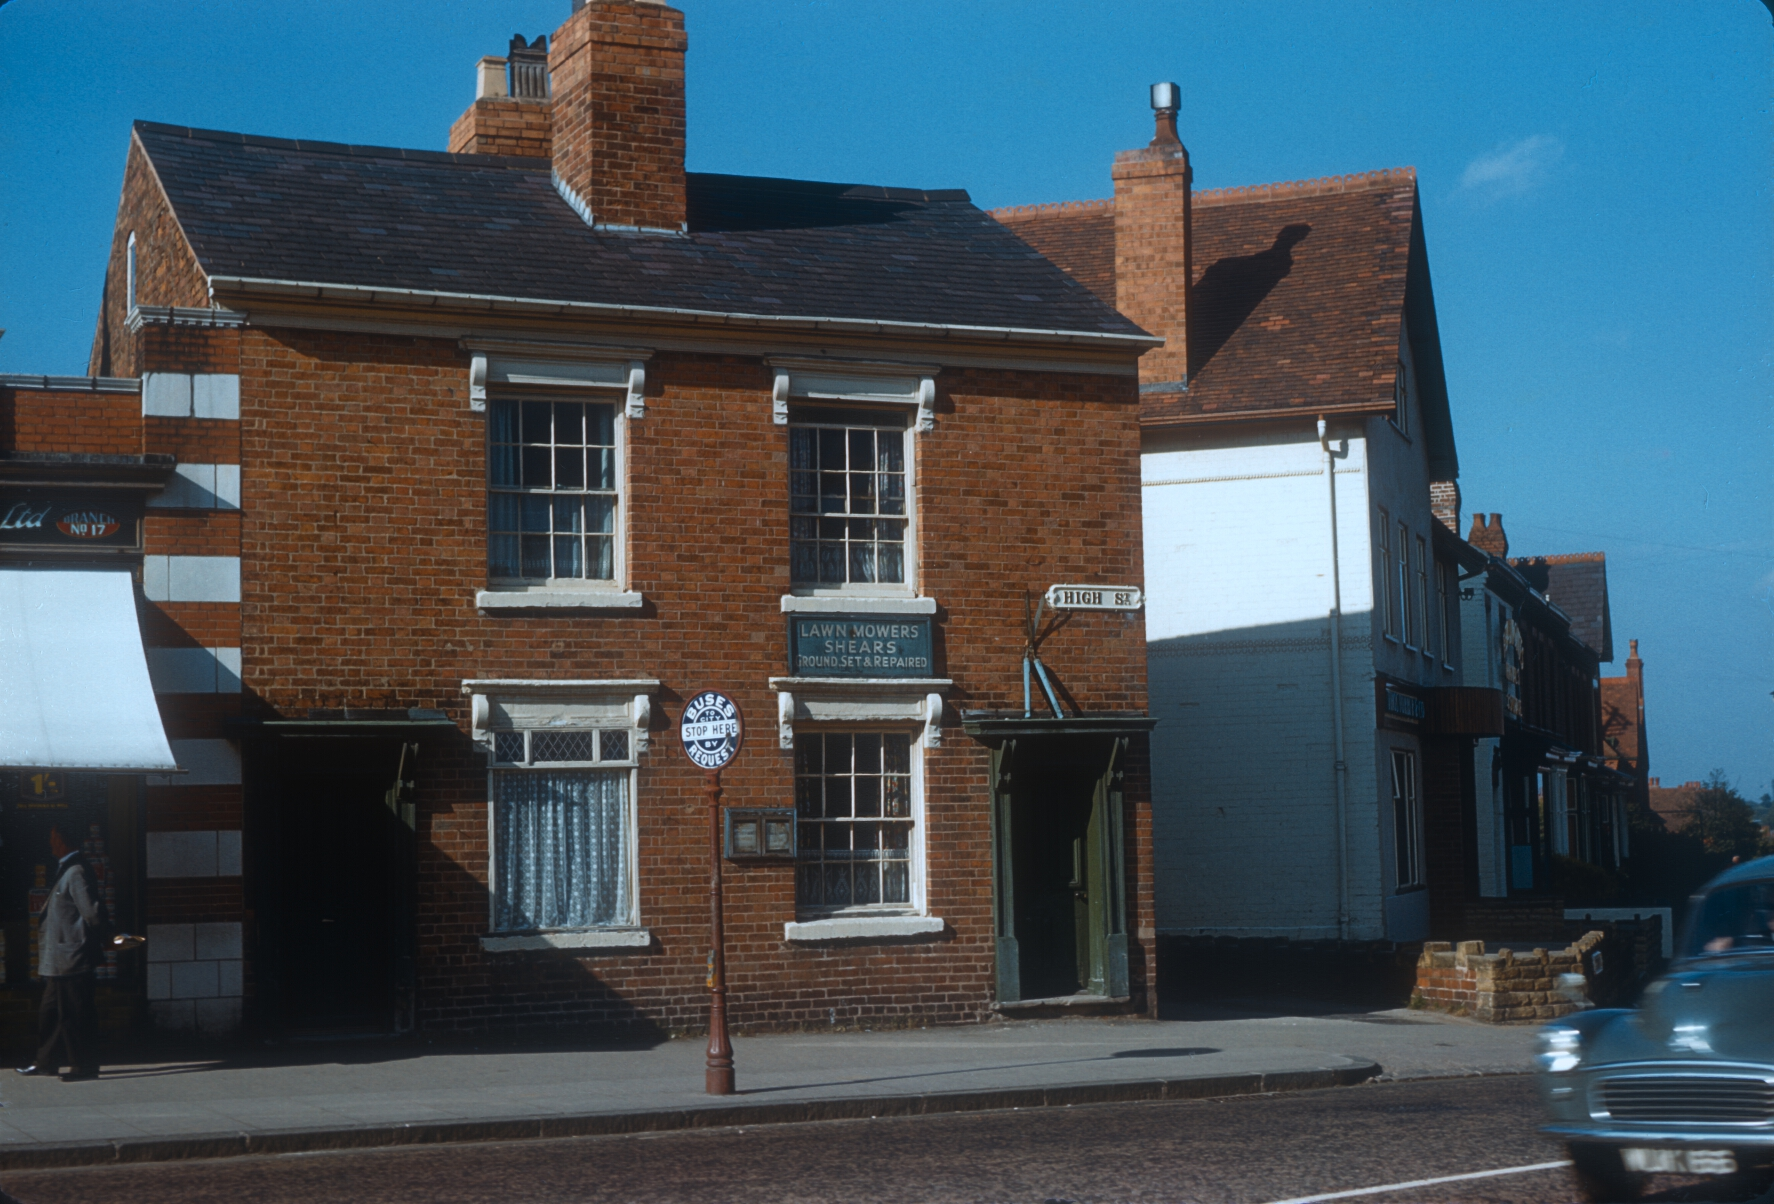 Harborne, No 277 & 275 High Street. 17th August 1961